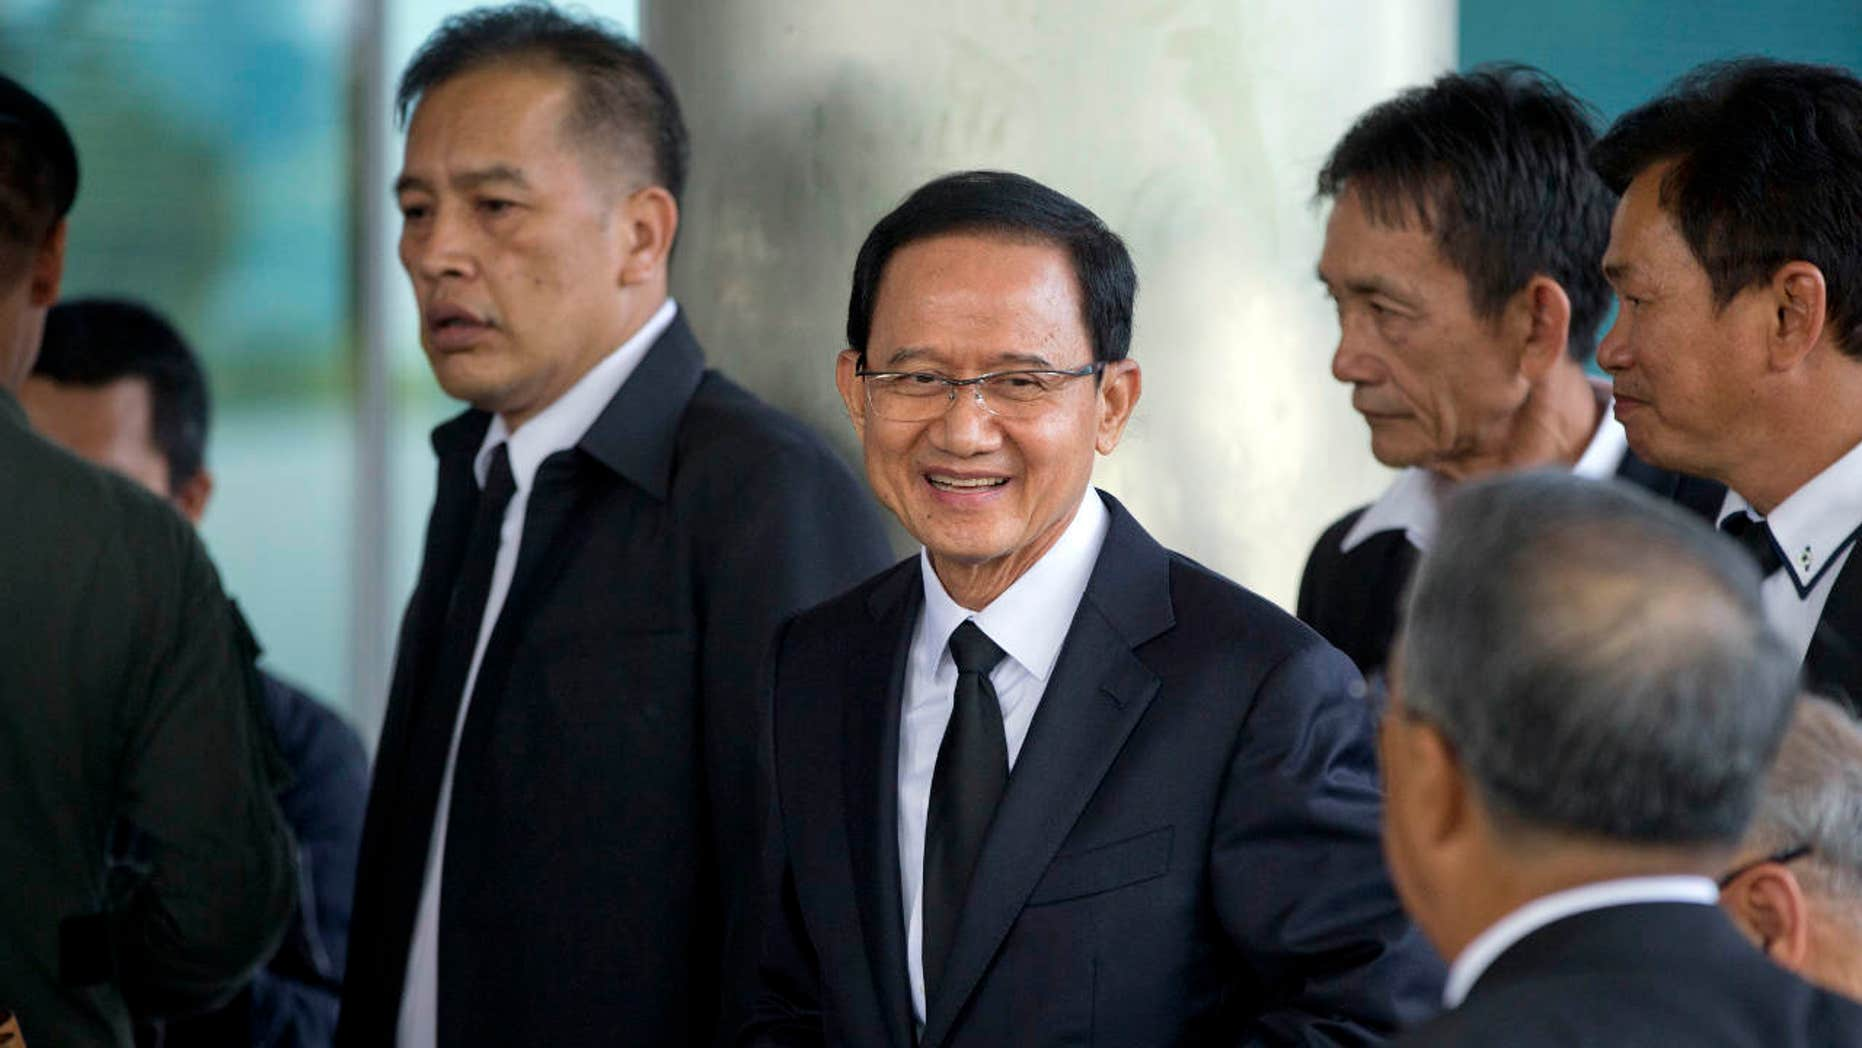 Thailand's former Prime Minister Somchai Wongsawat, center, smilies upon his arrival at a courthouse Wednesday, Aug. 2, 2017, in Bangkok, Thailand.